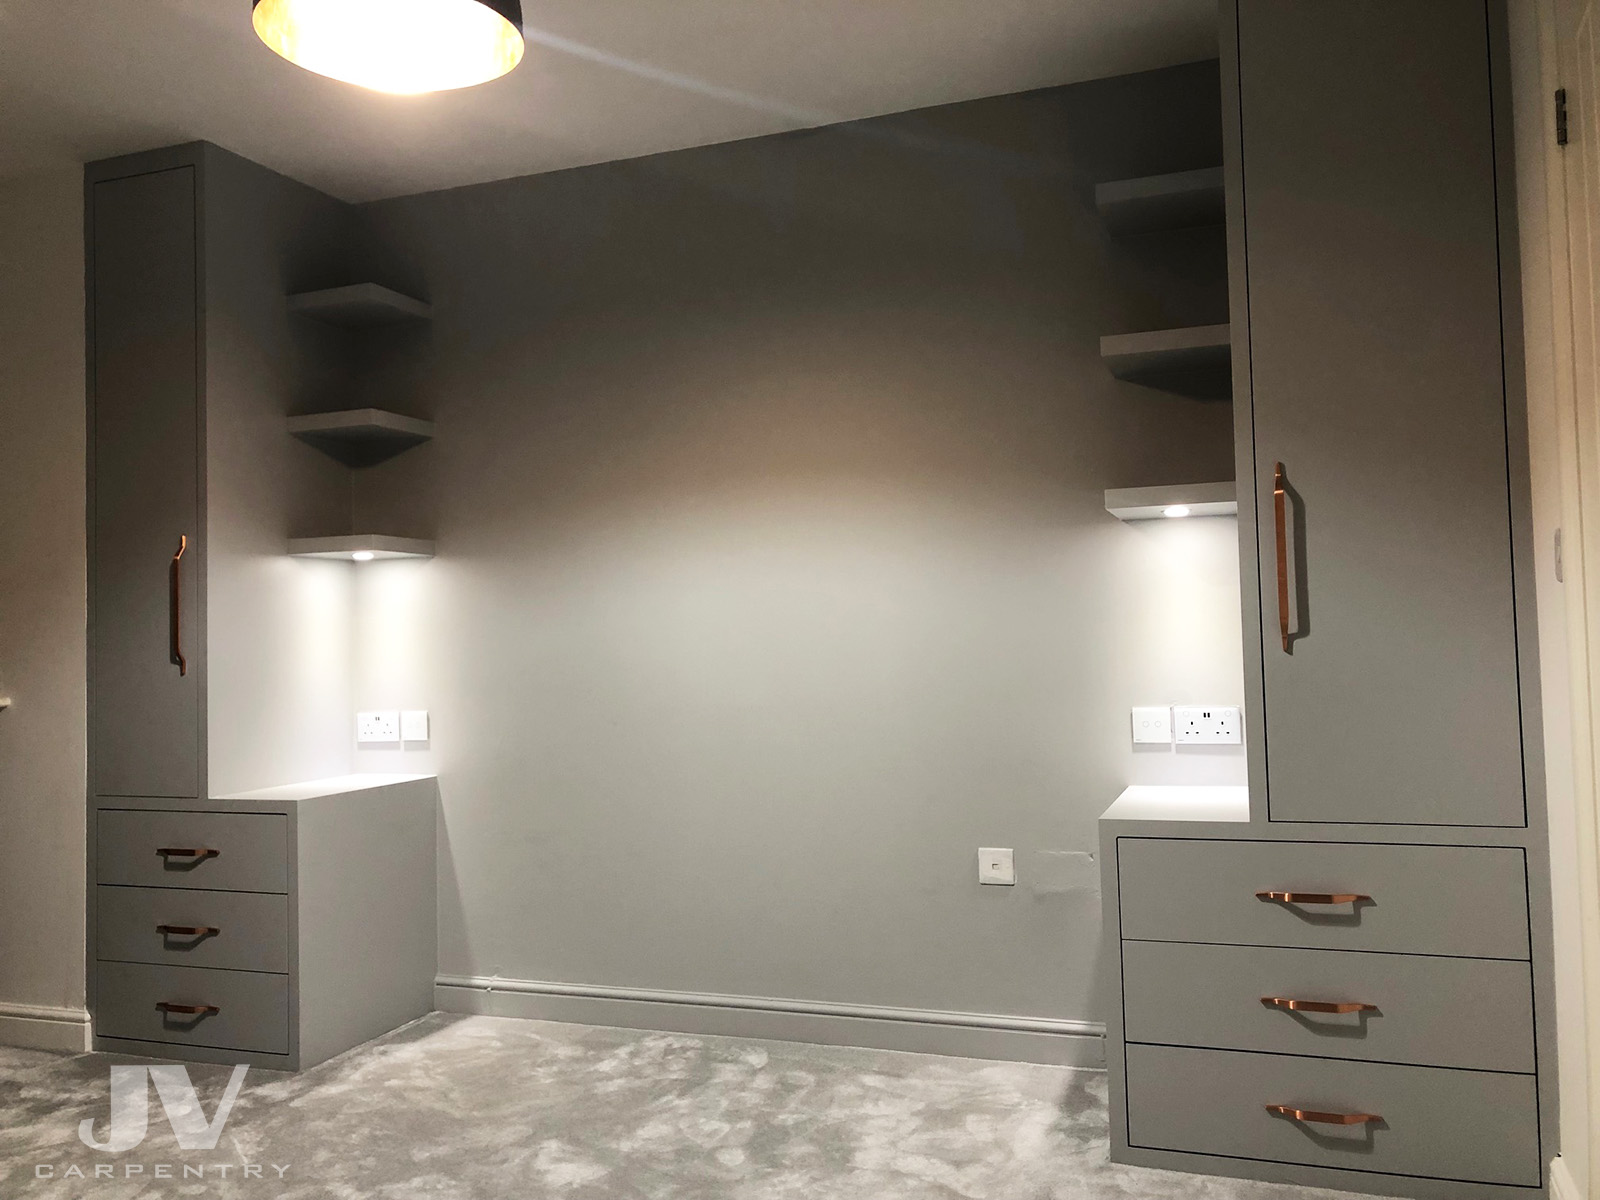 Small fitted wardrobes either side of the bed